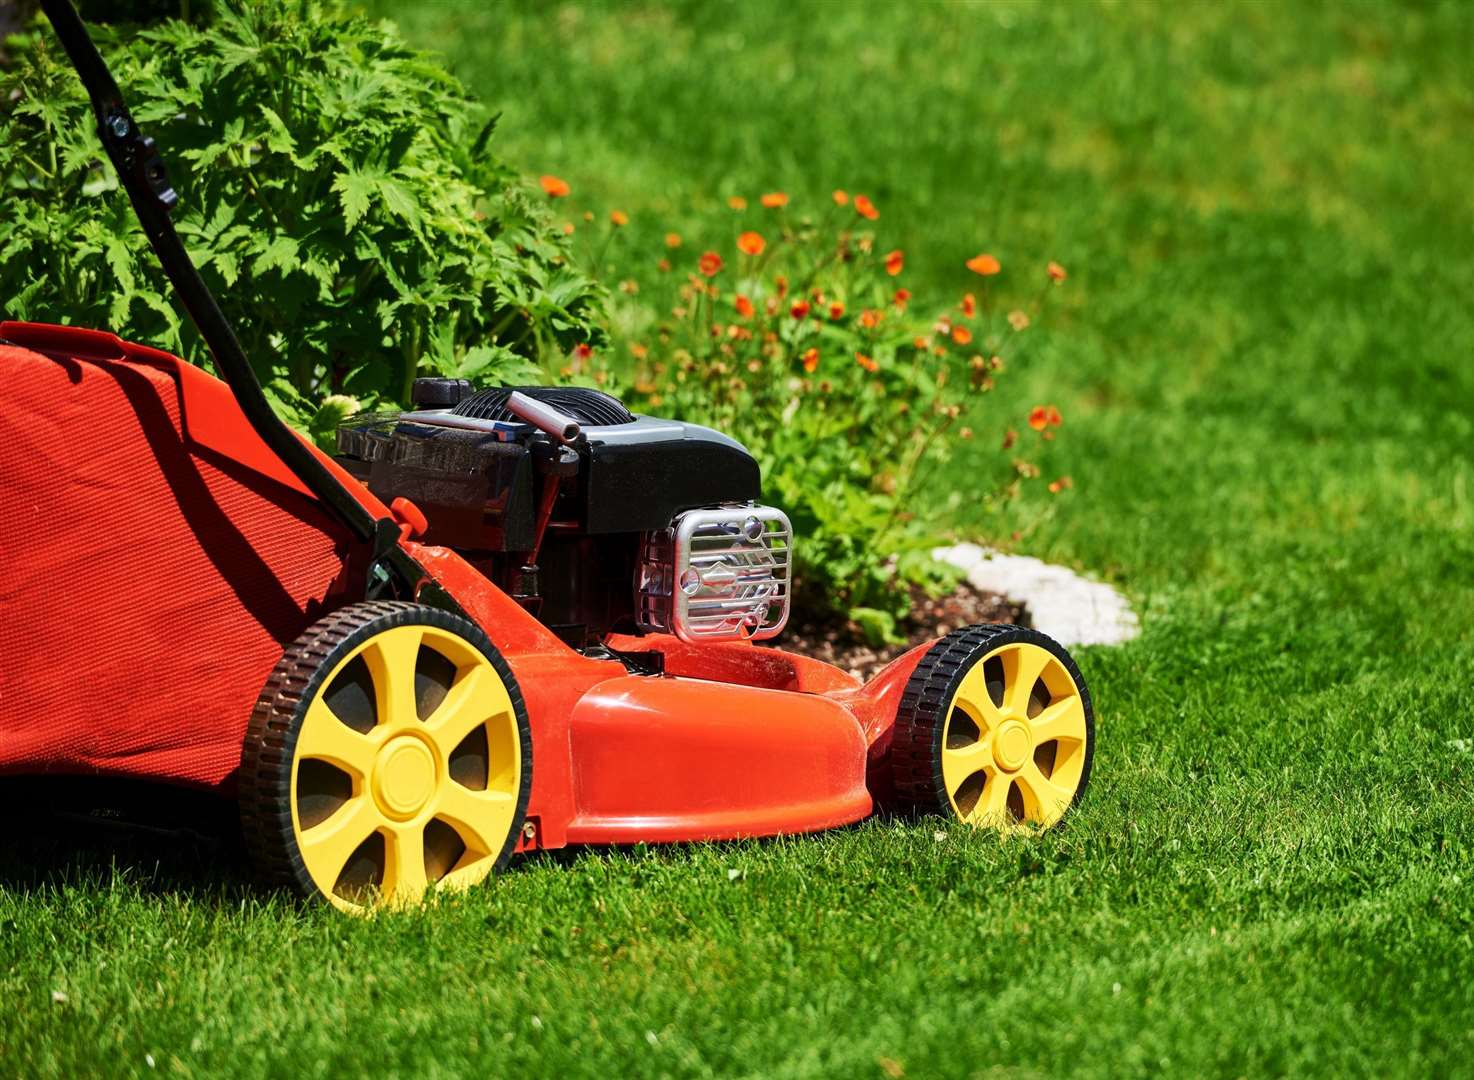 Water and mow carefully for a great summer lawn